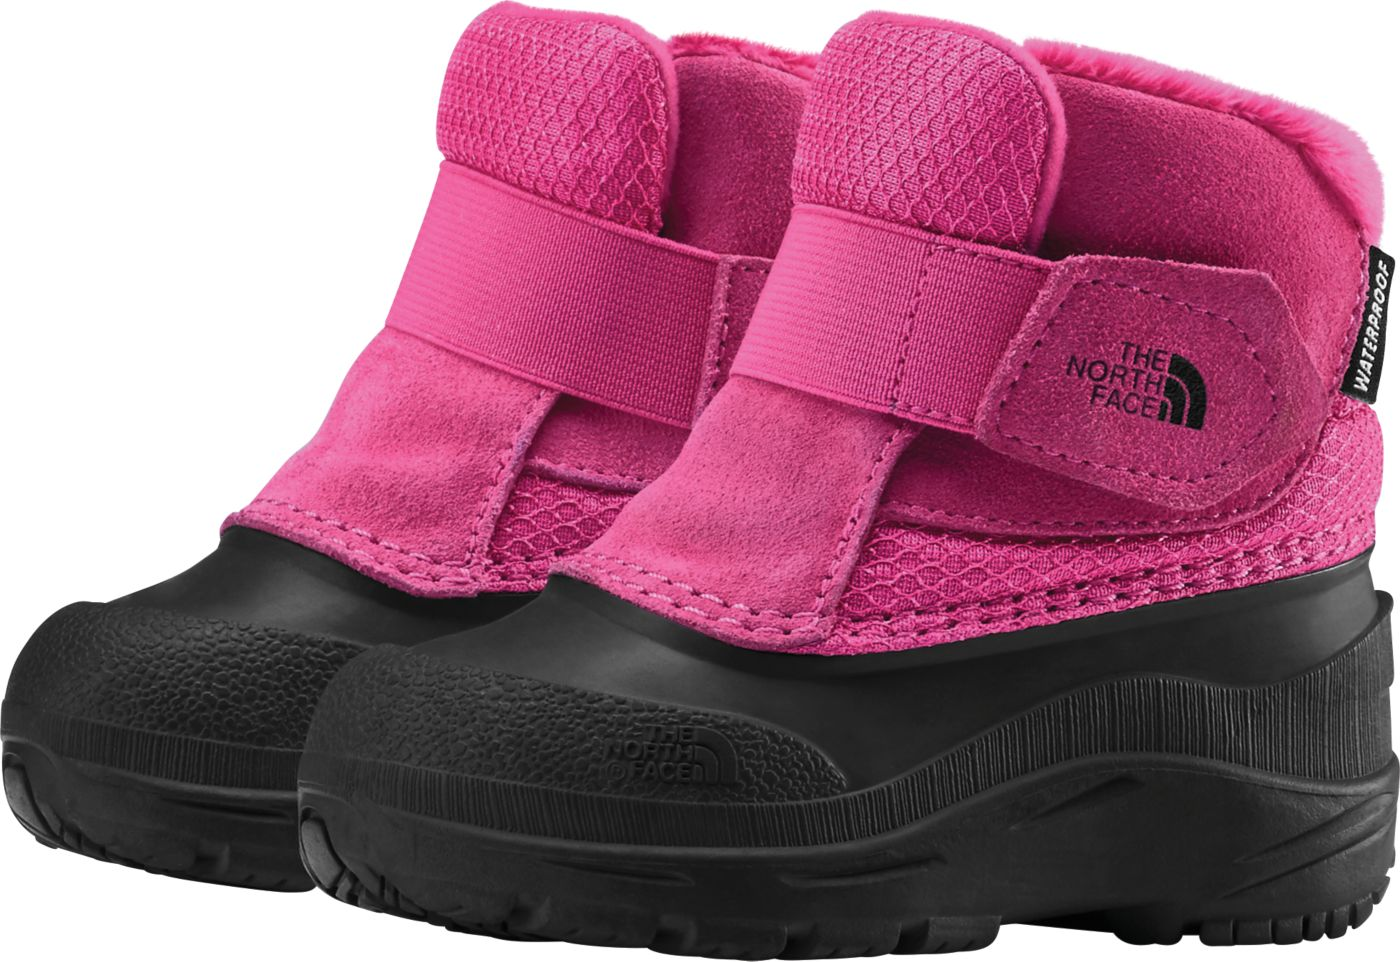 The North Face Toddler Alpenglow II 200g Waterproof Winter Boots